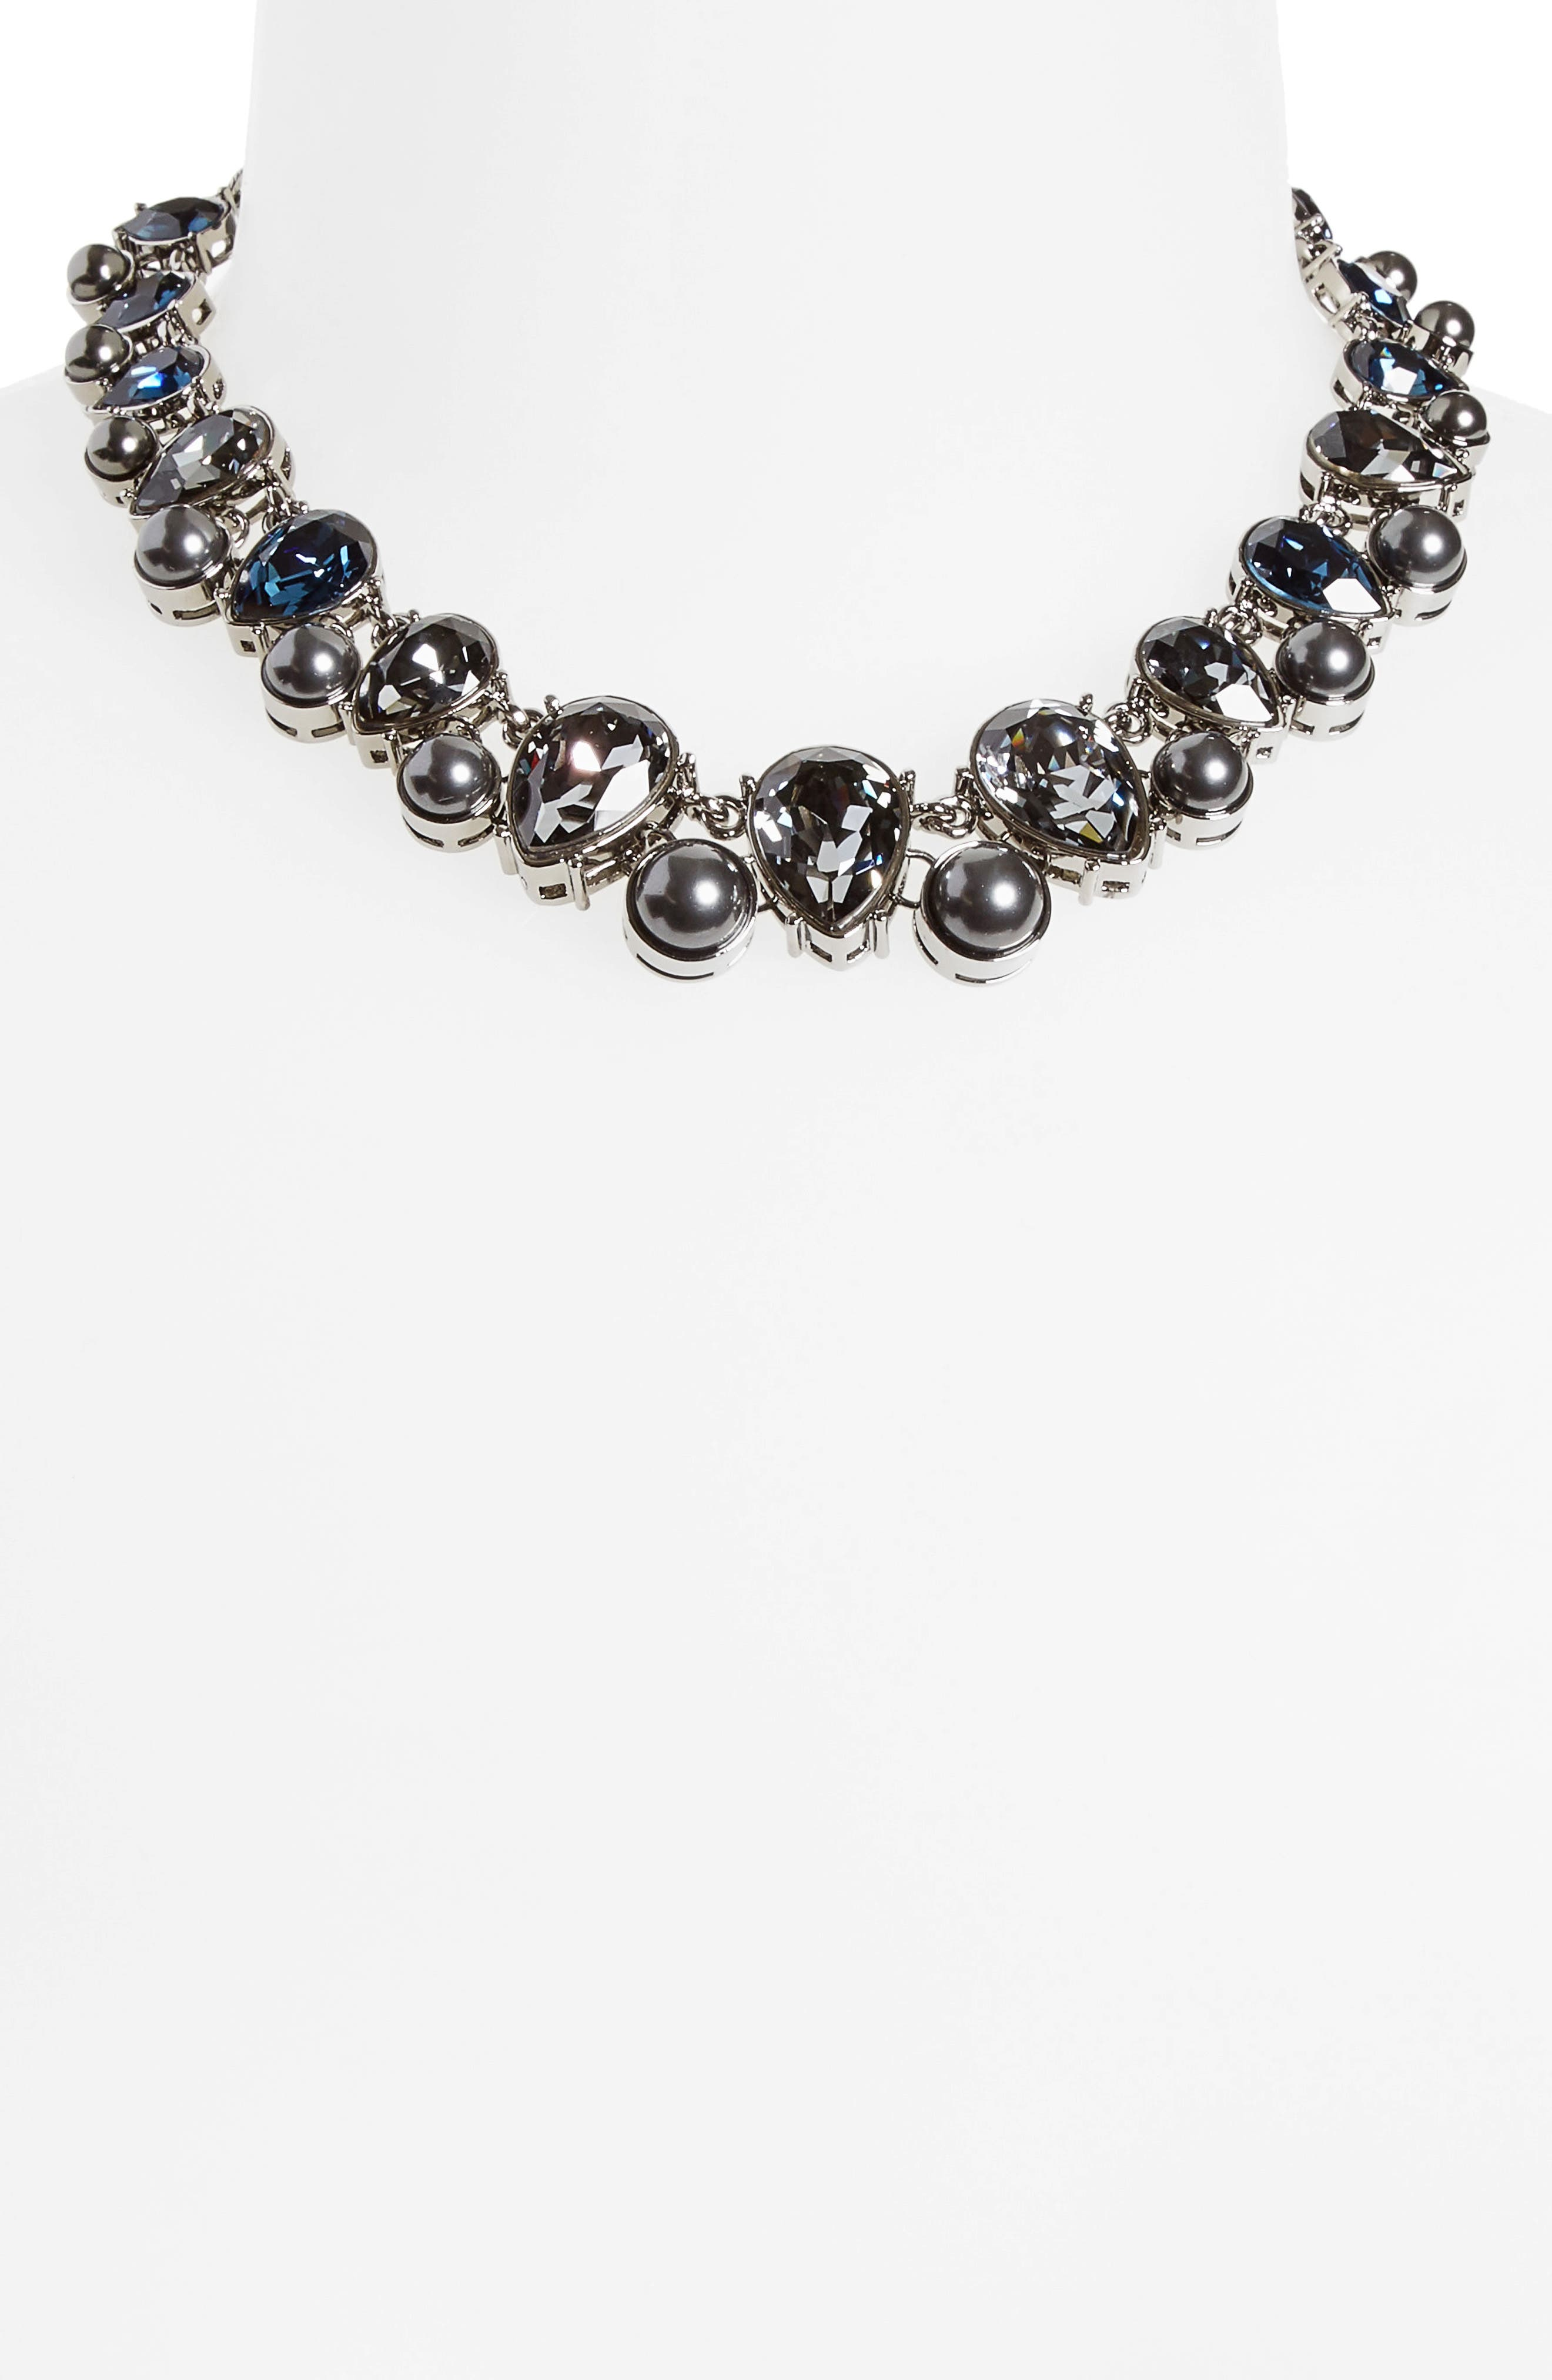 Swarovski Crystal & Imitation Pearl Necklace,                             Alternate thumbnail 2, color,                             Drk Ruth/Crys Blk Prl/Csn/Mont